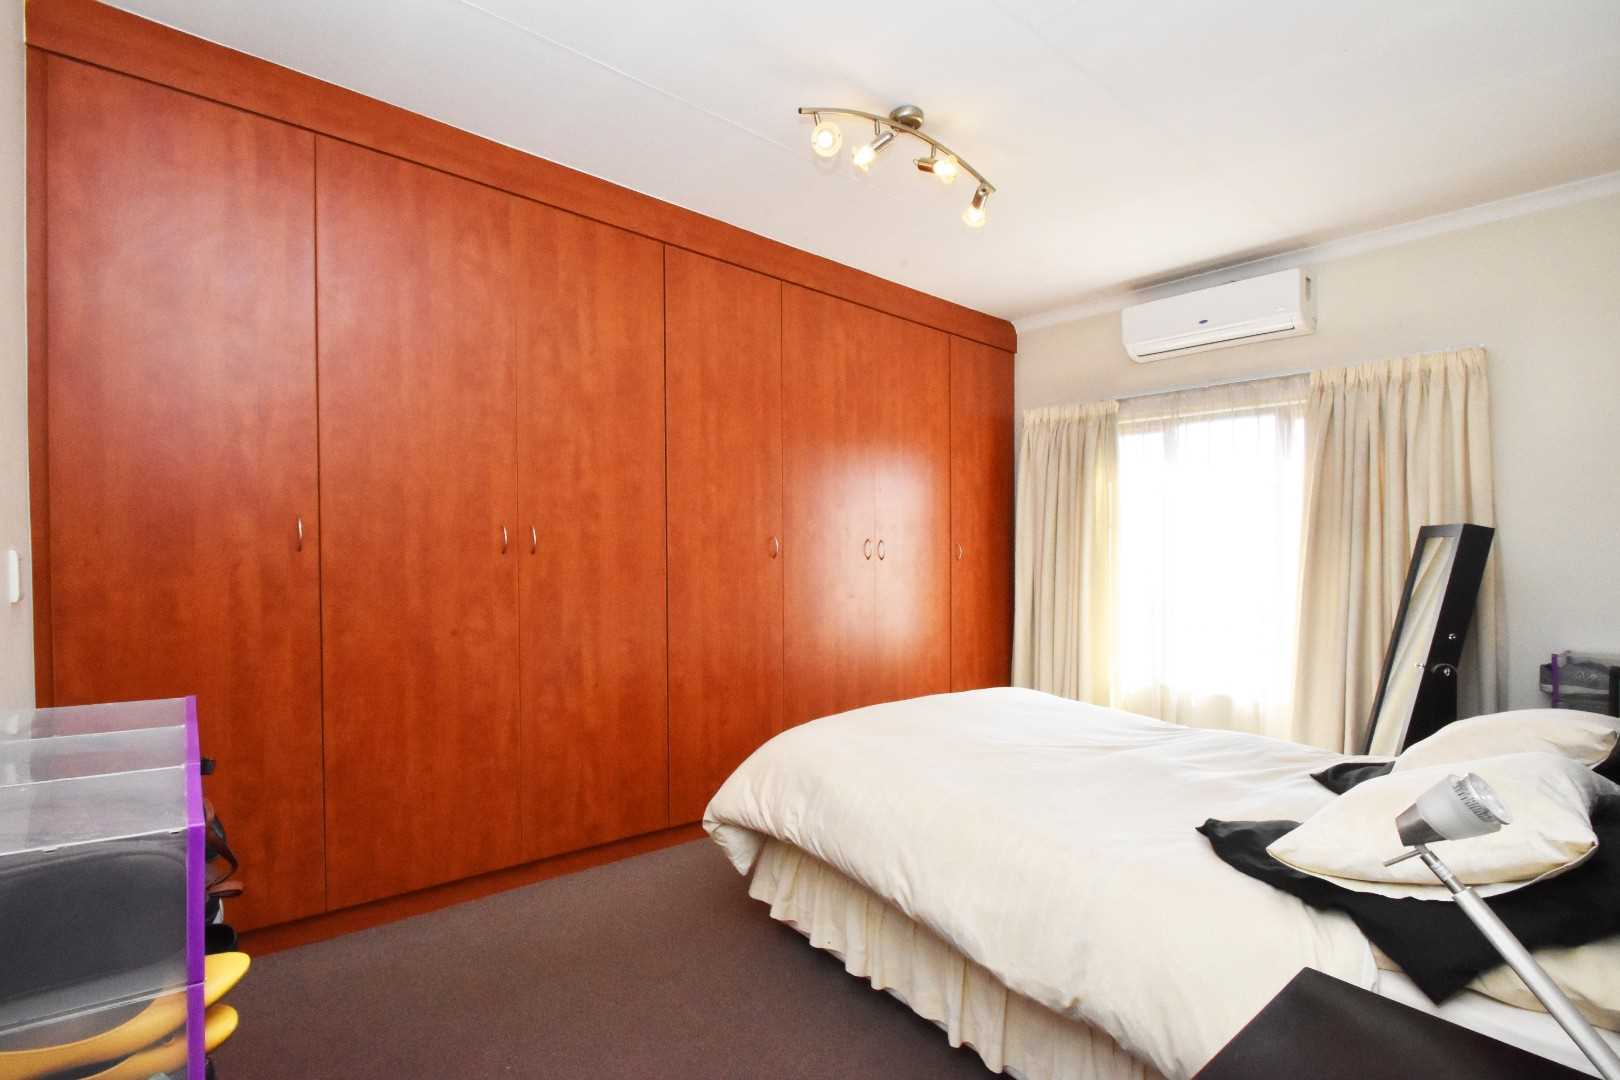 Wall to wall cupboards in the main bedroom